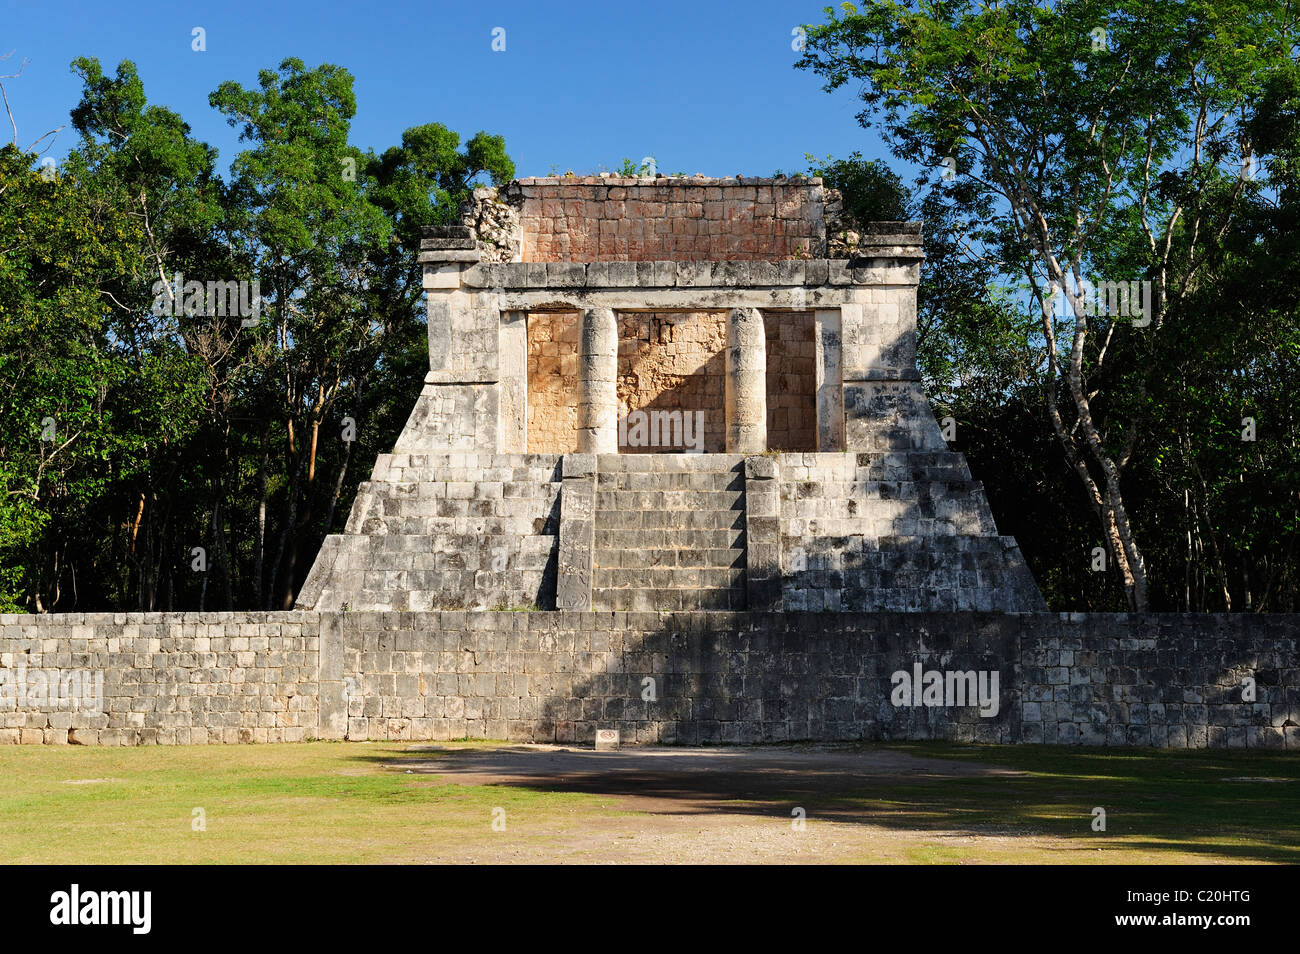 Temple of the North within the Ballcourt at Chichen Itza, Yucatan, Mexico - Stock Image